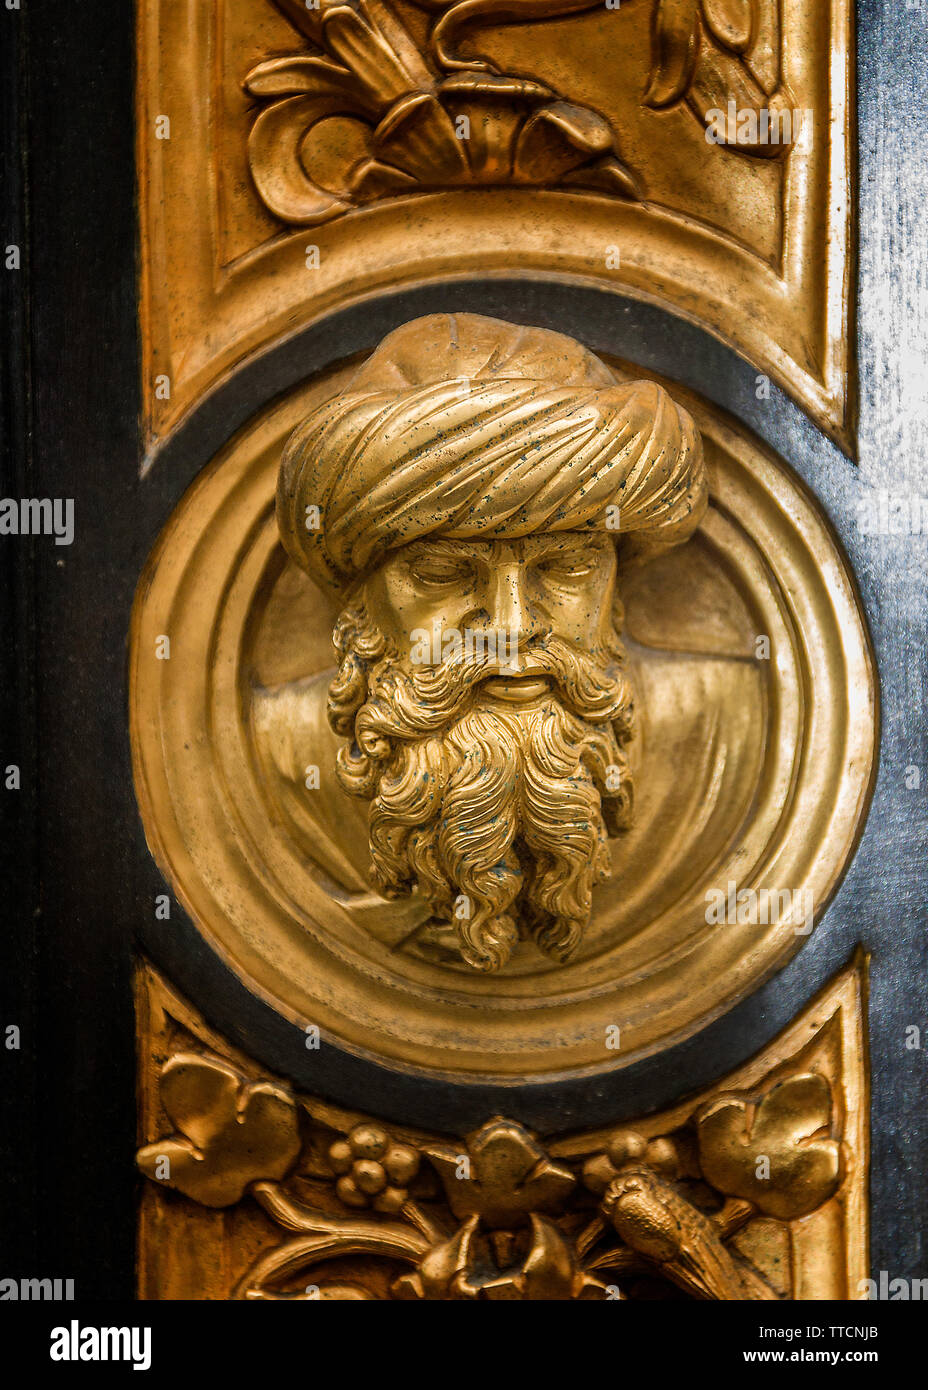 Italy, Florence. Bronze, gilt-coated doors of the Baptistery of San Giovanni - 'The Gates of Paradise', as the great Michelangelo called them. Fragmen - Stock Image